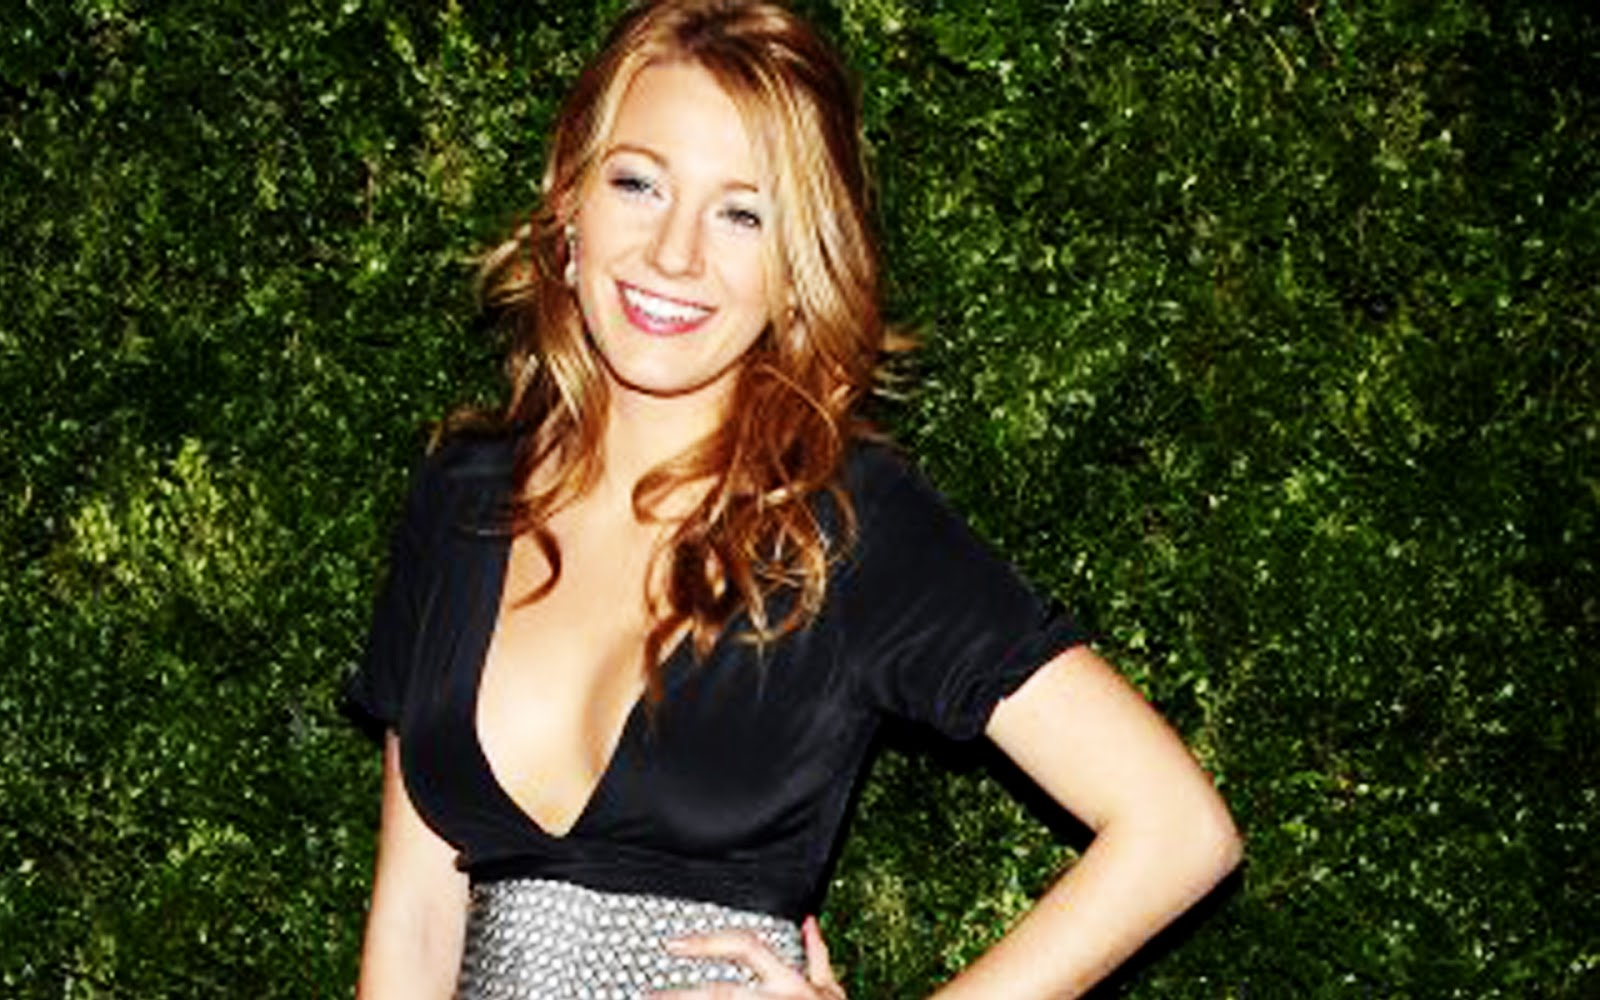 Blake Lively Hot Wallpapers   Blake Lively Wallpapers